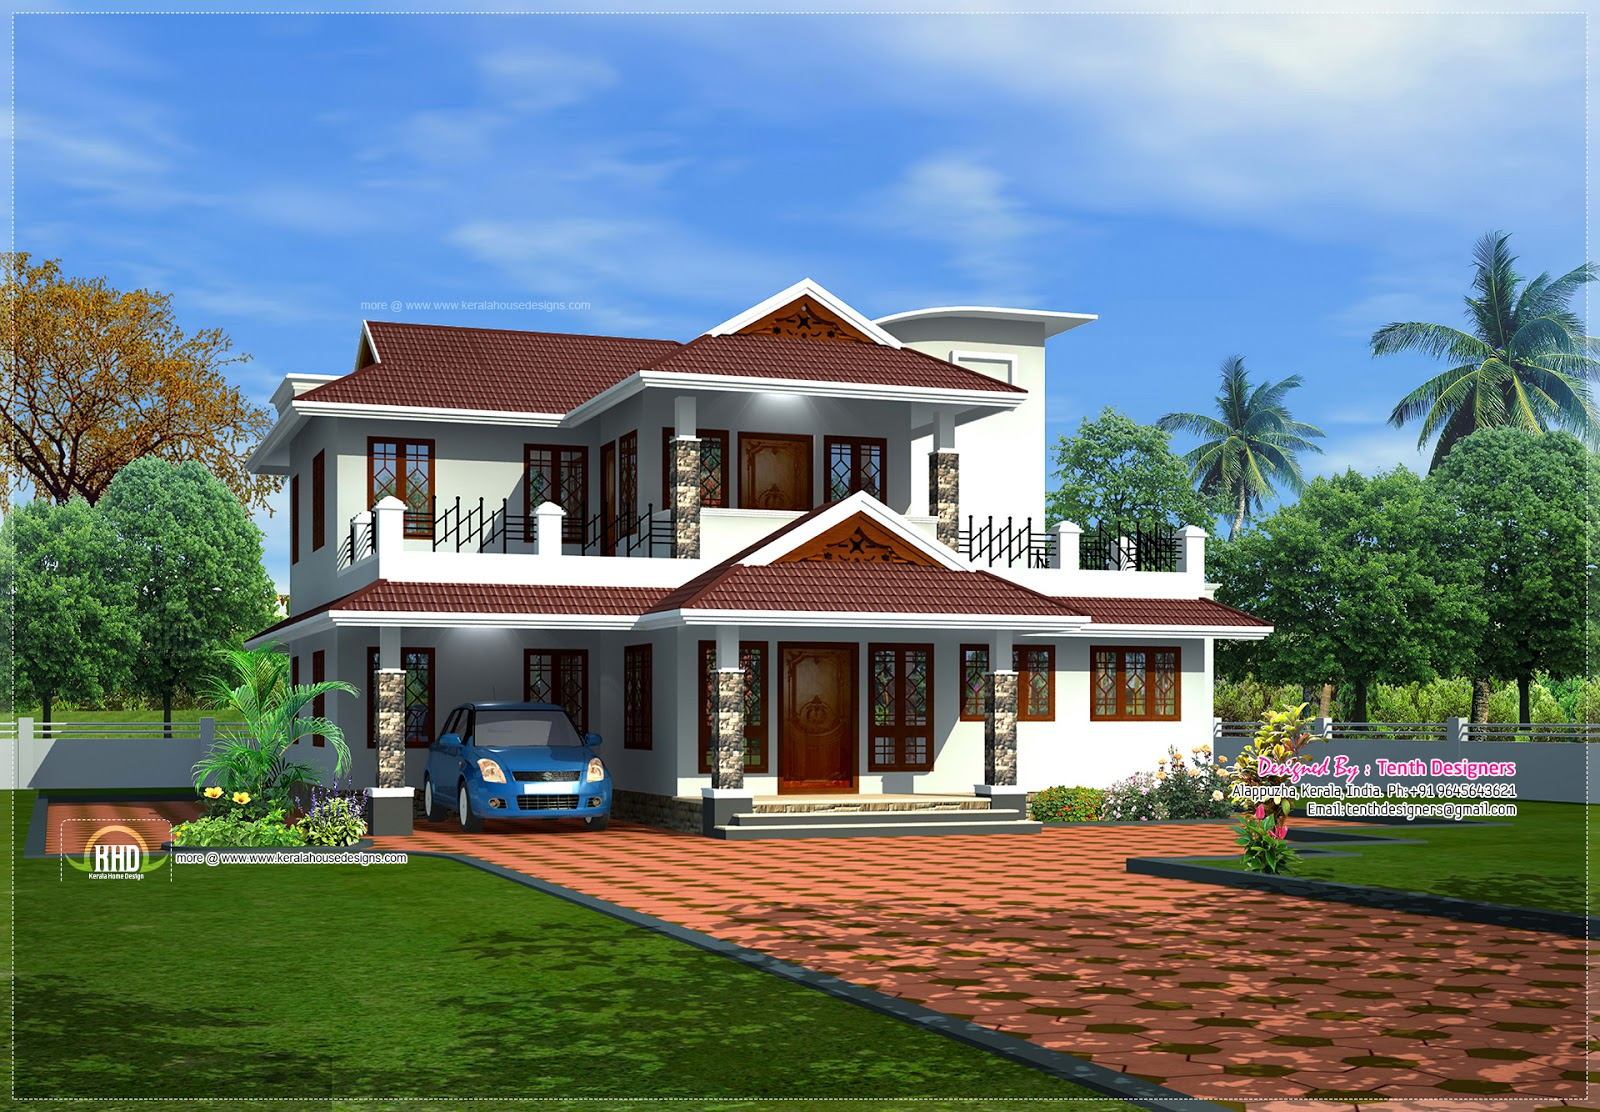 2000 Square Feet Kerala Model Home Design Ideas For You